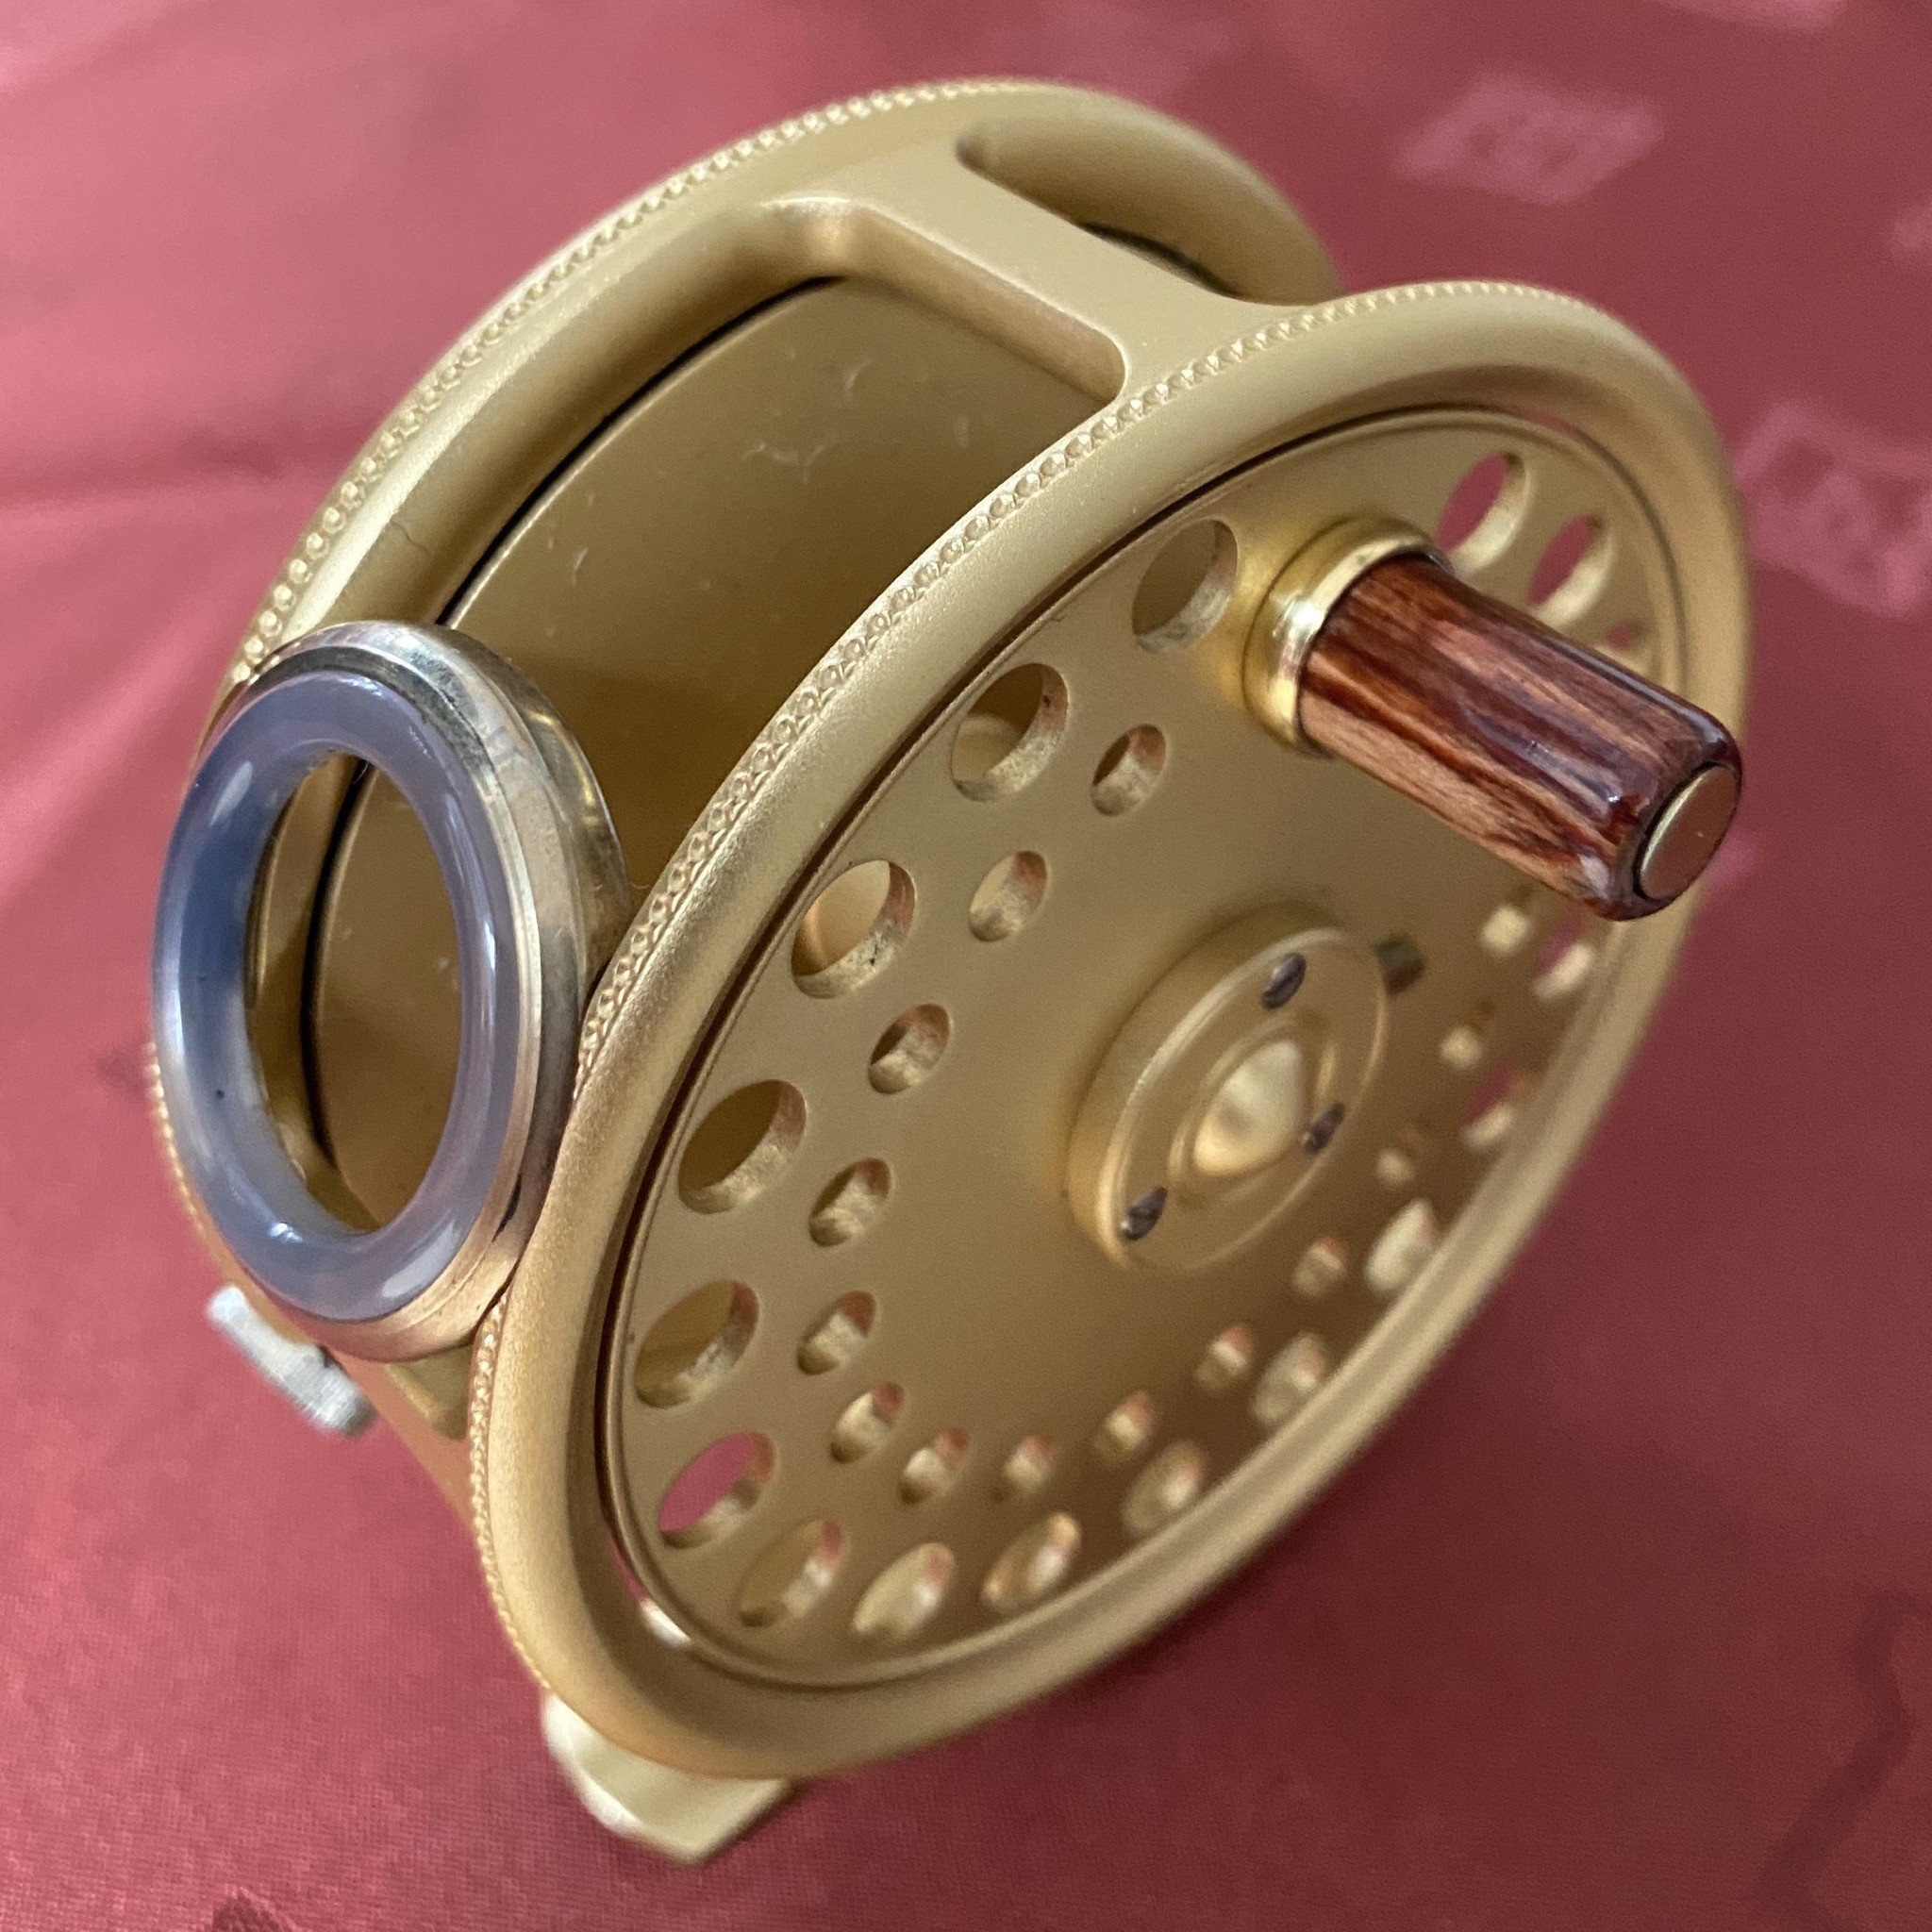 St. George The Royal Wedding Commemorative 3 inch Fly Reel MADE IN ENGLAND - LIMITED EDITION image 2